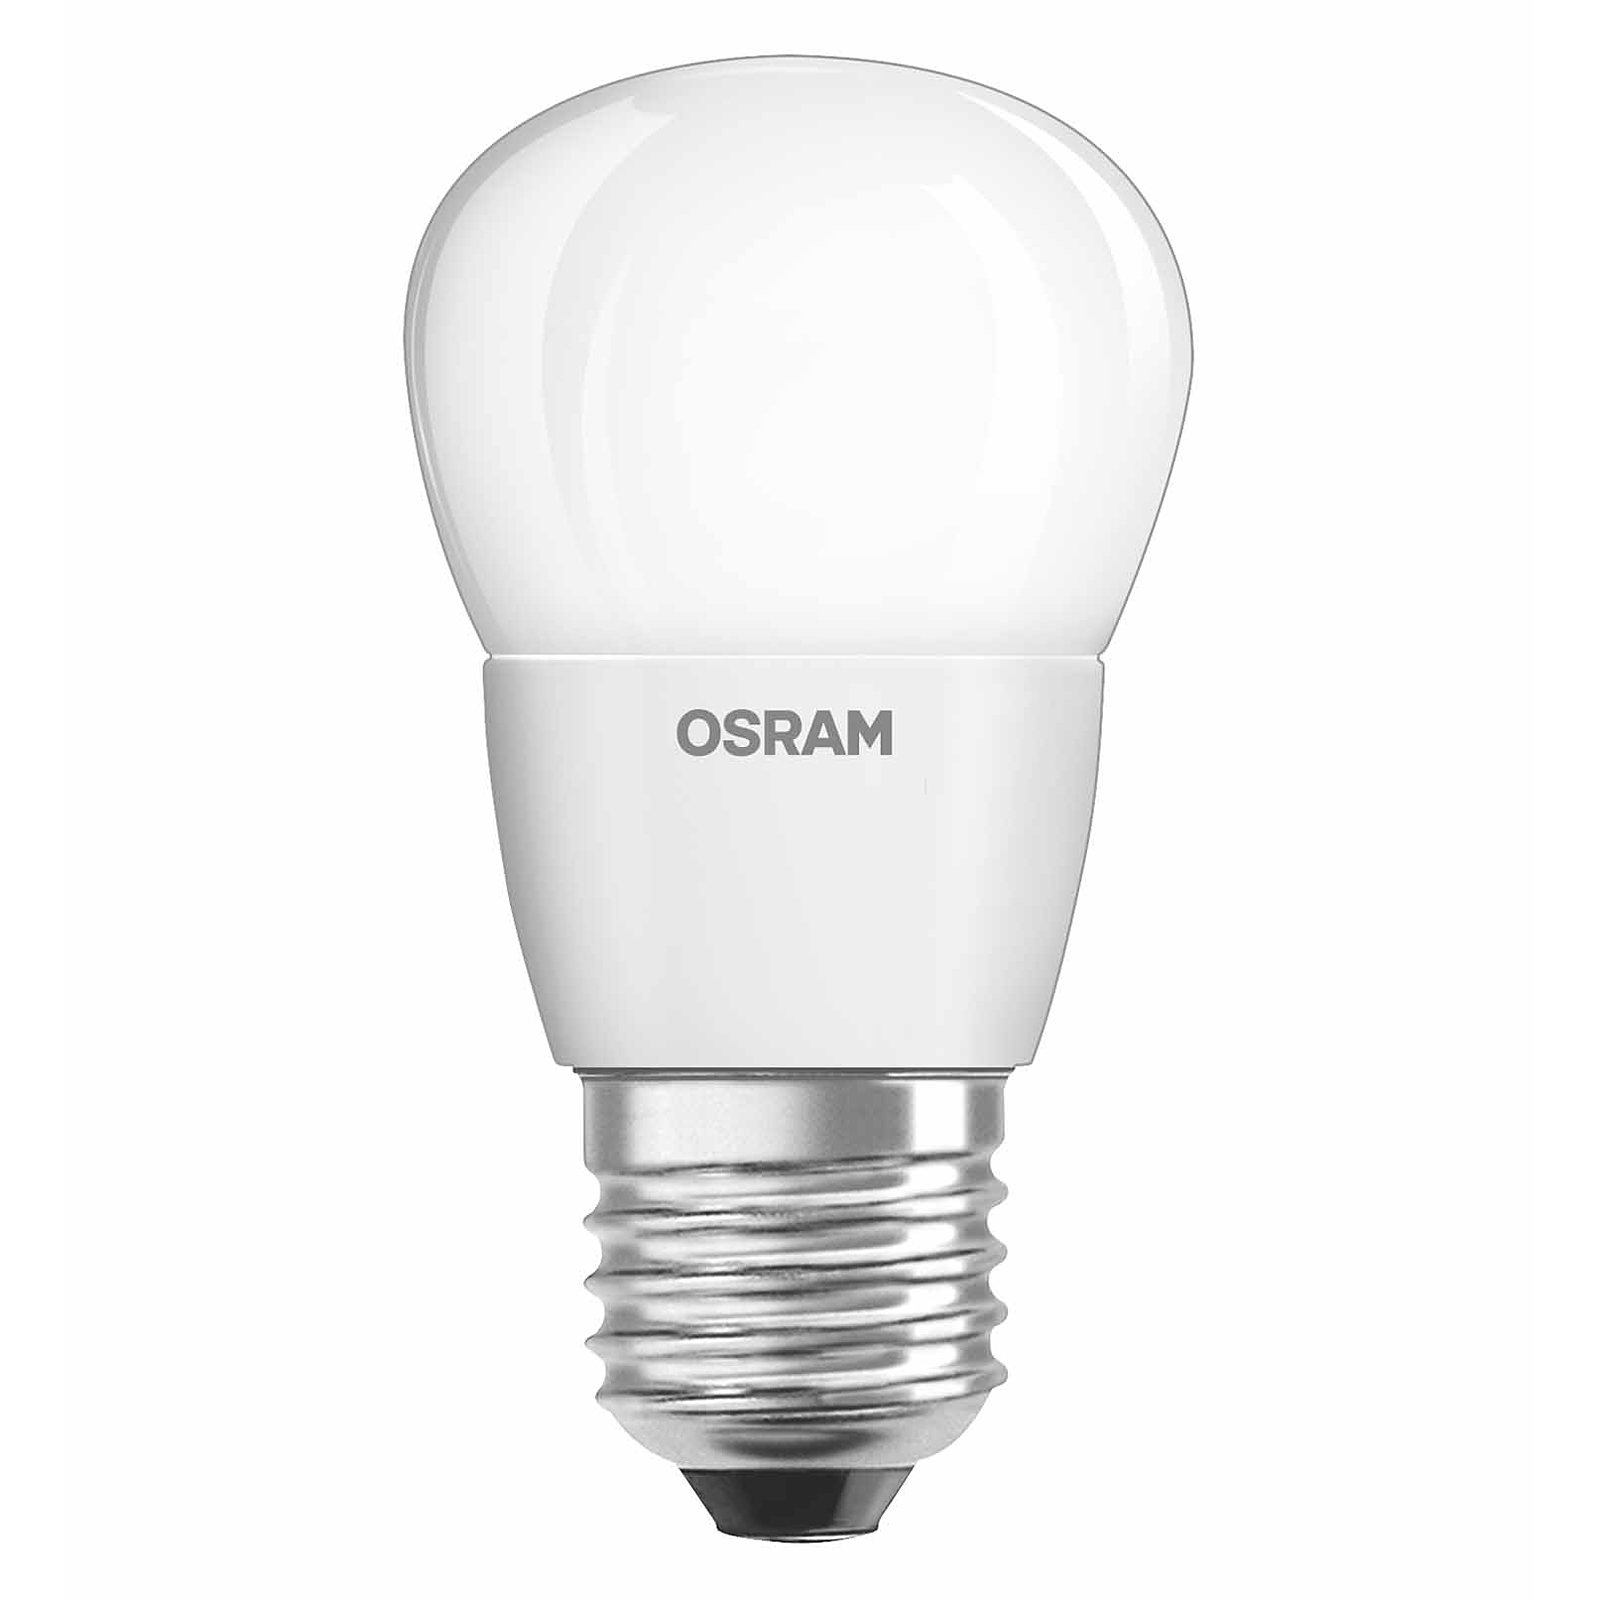 lampe osram halogen lamp elc w v gx osram with lampe osram free finest lampe with osram g led. Black Bedroom Furniture Sets. Home Design Ideas